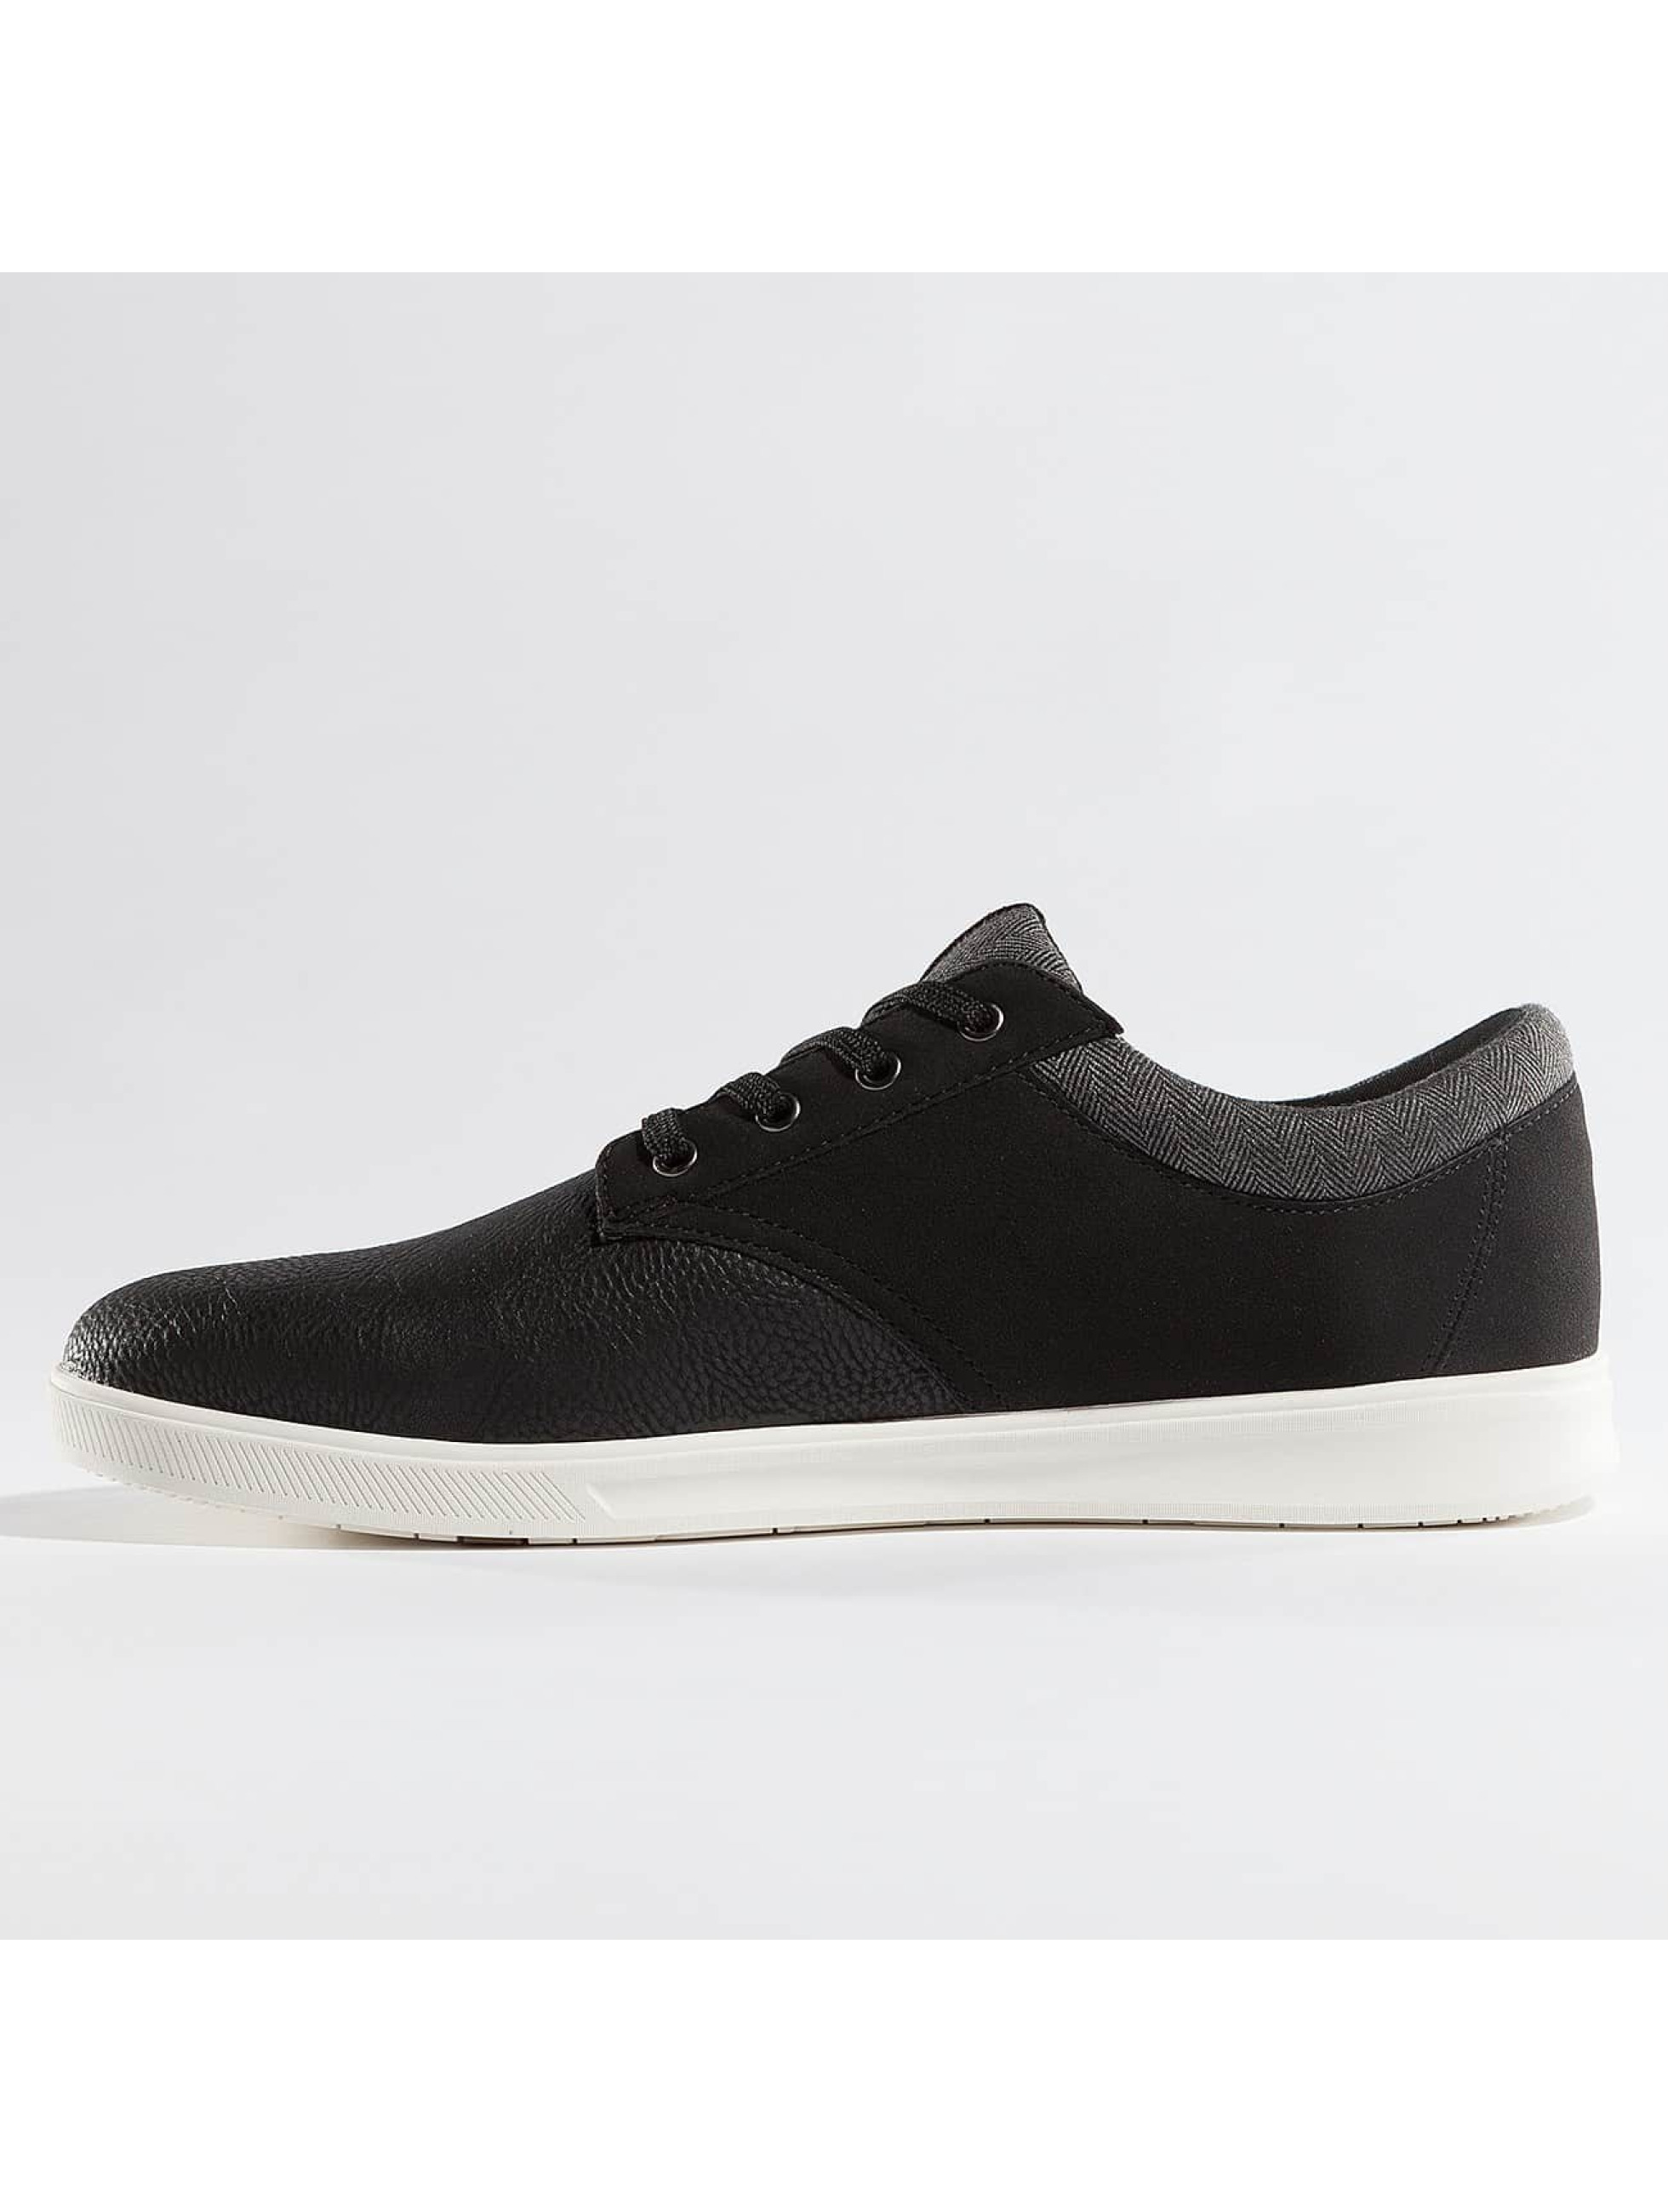 Jack & Jones Sneakers jfwGaston szary